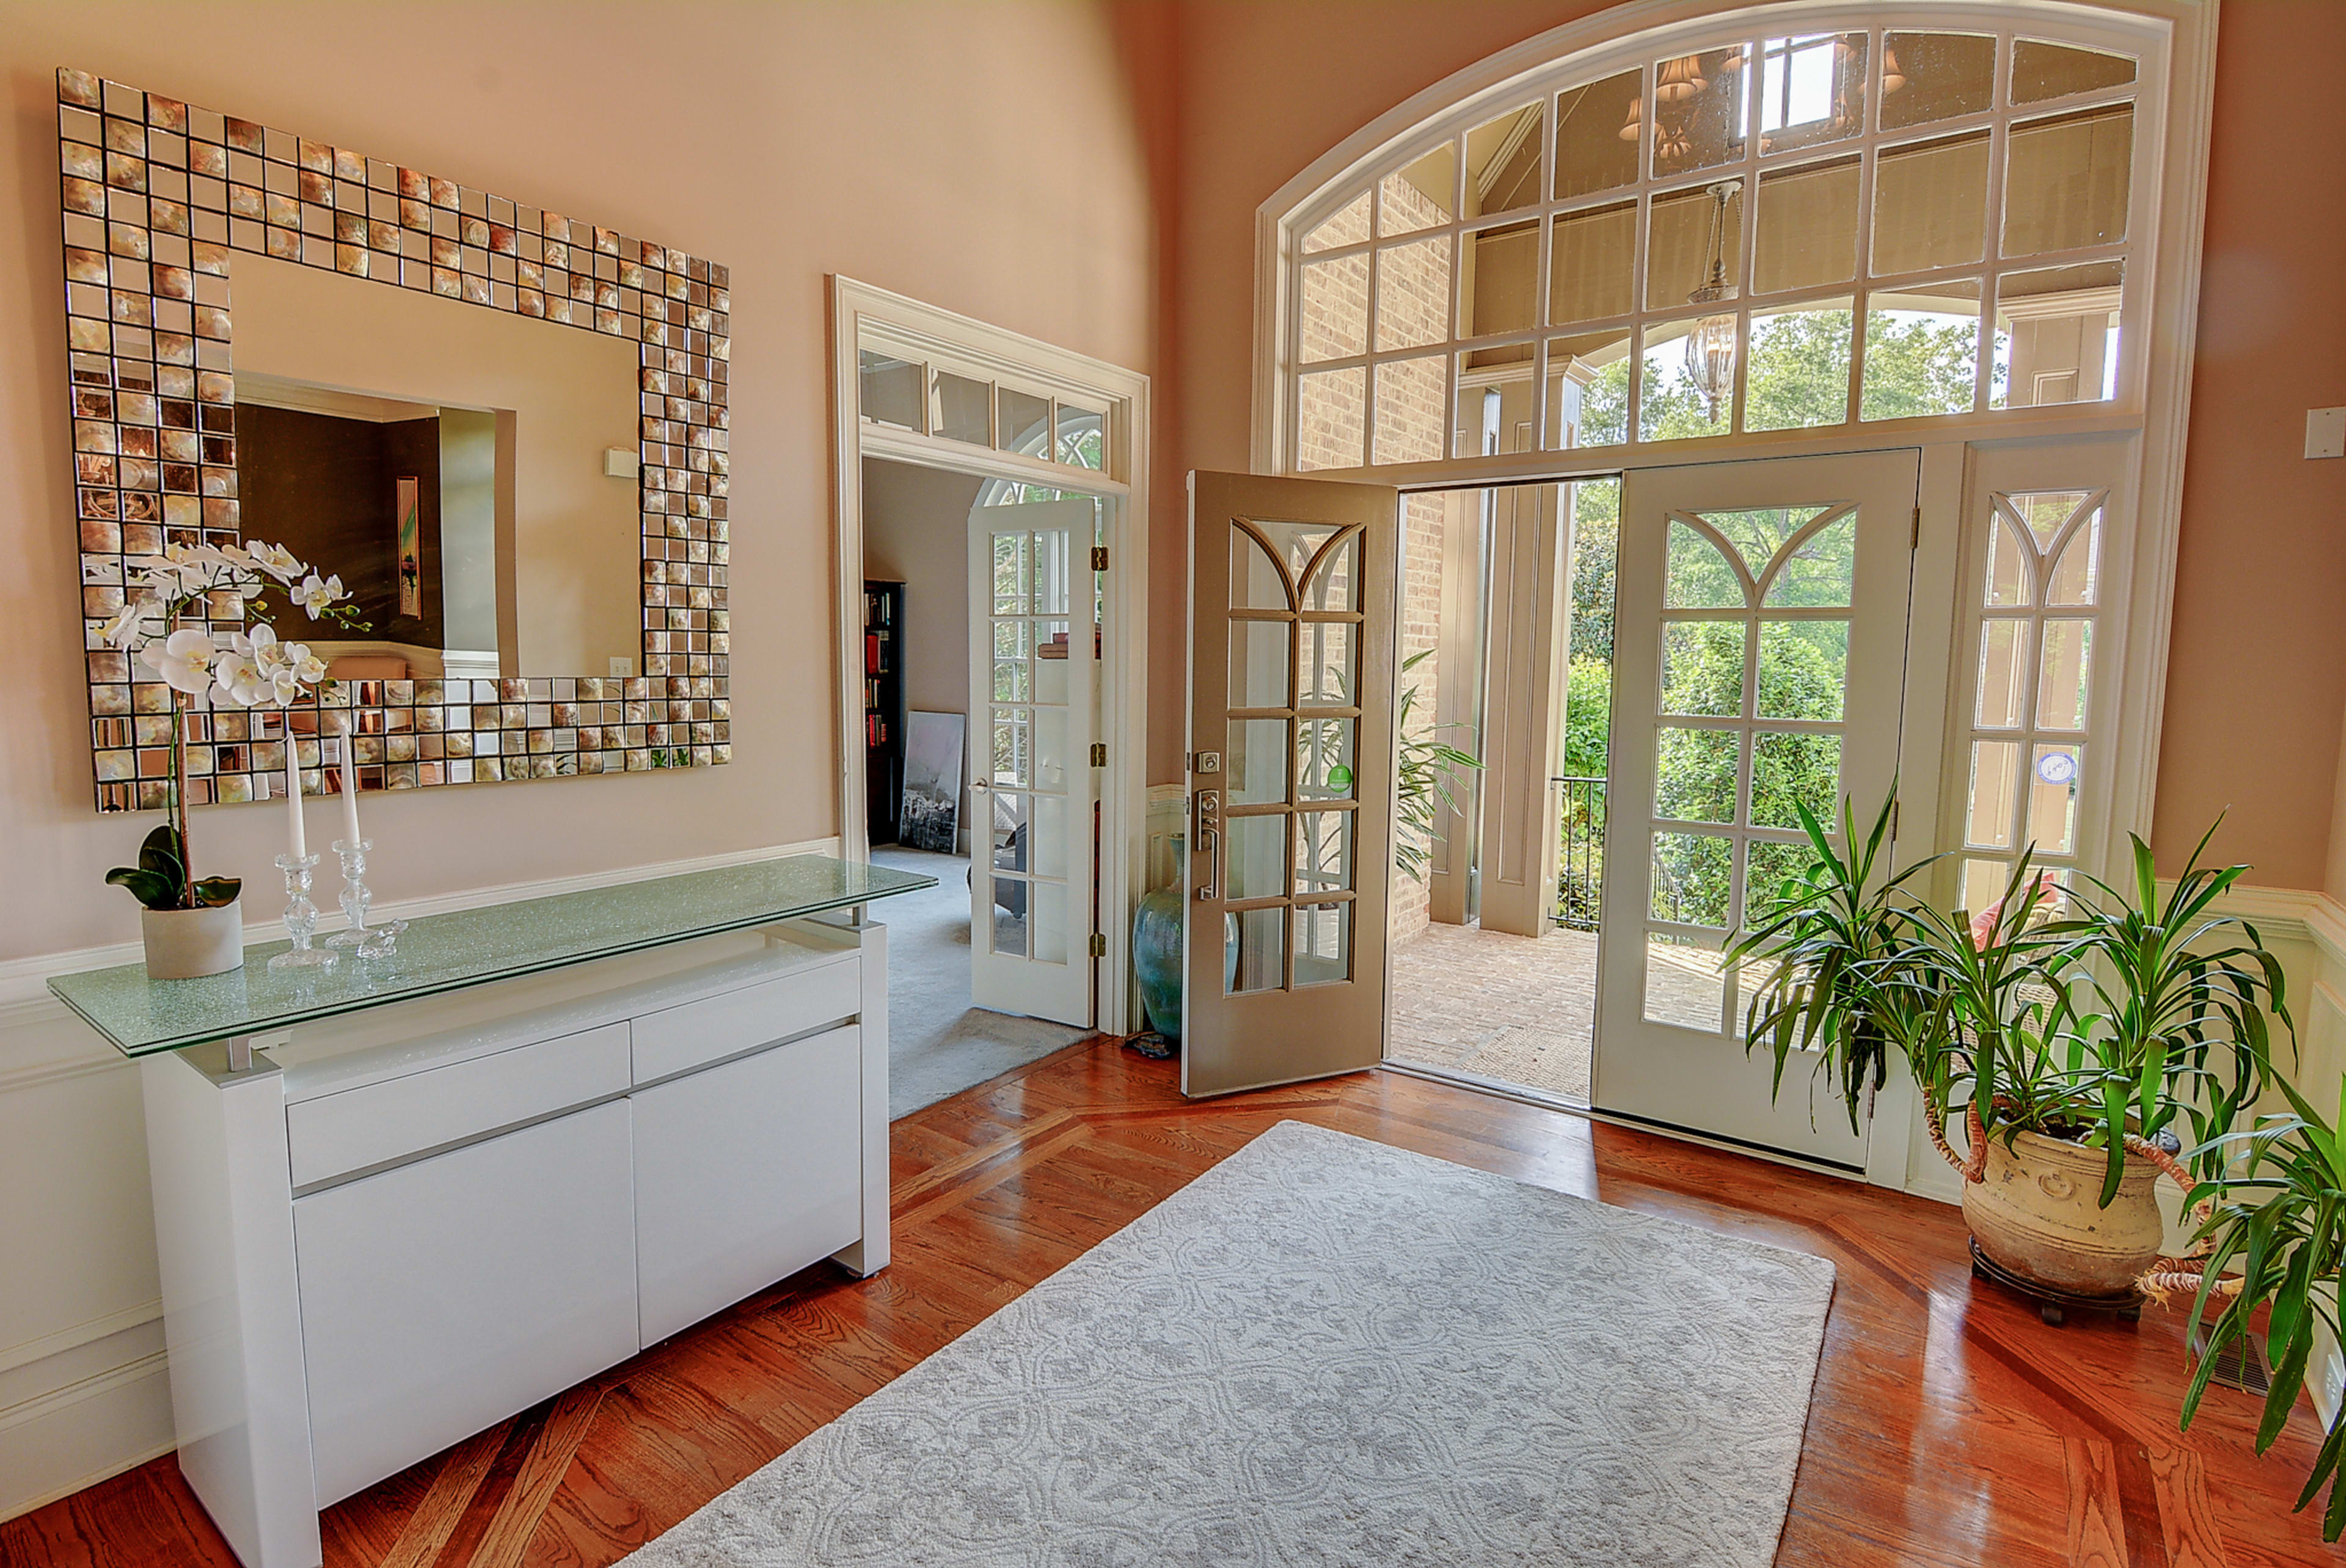 24 Elegant Genwood Hardwood Flooring Reviews 2021 free download genwood hardwood flooring reviews of the gilmore group intended for welcome home to a breath of fresh air and elegance in peachtree corners